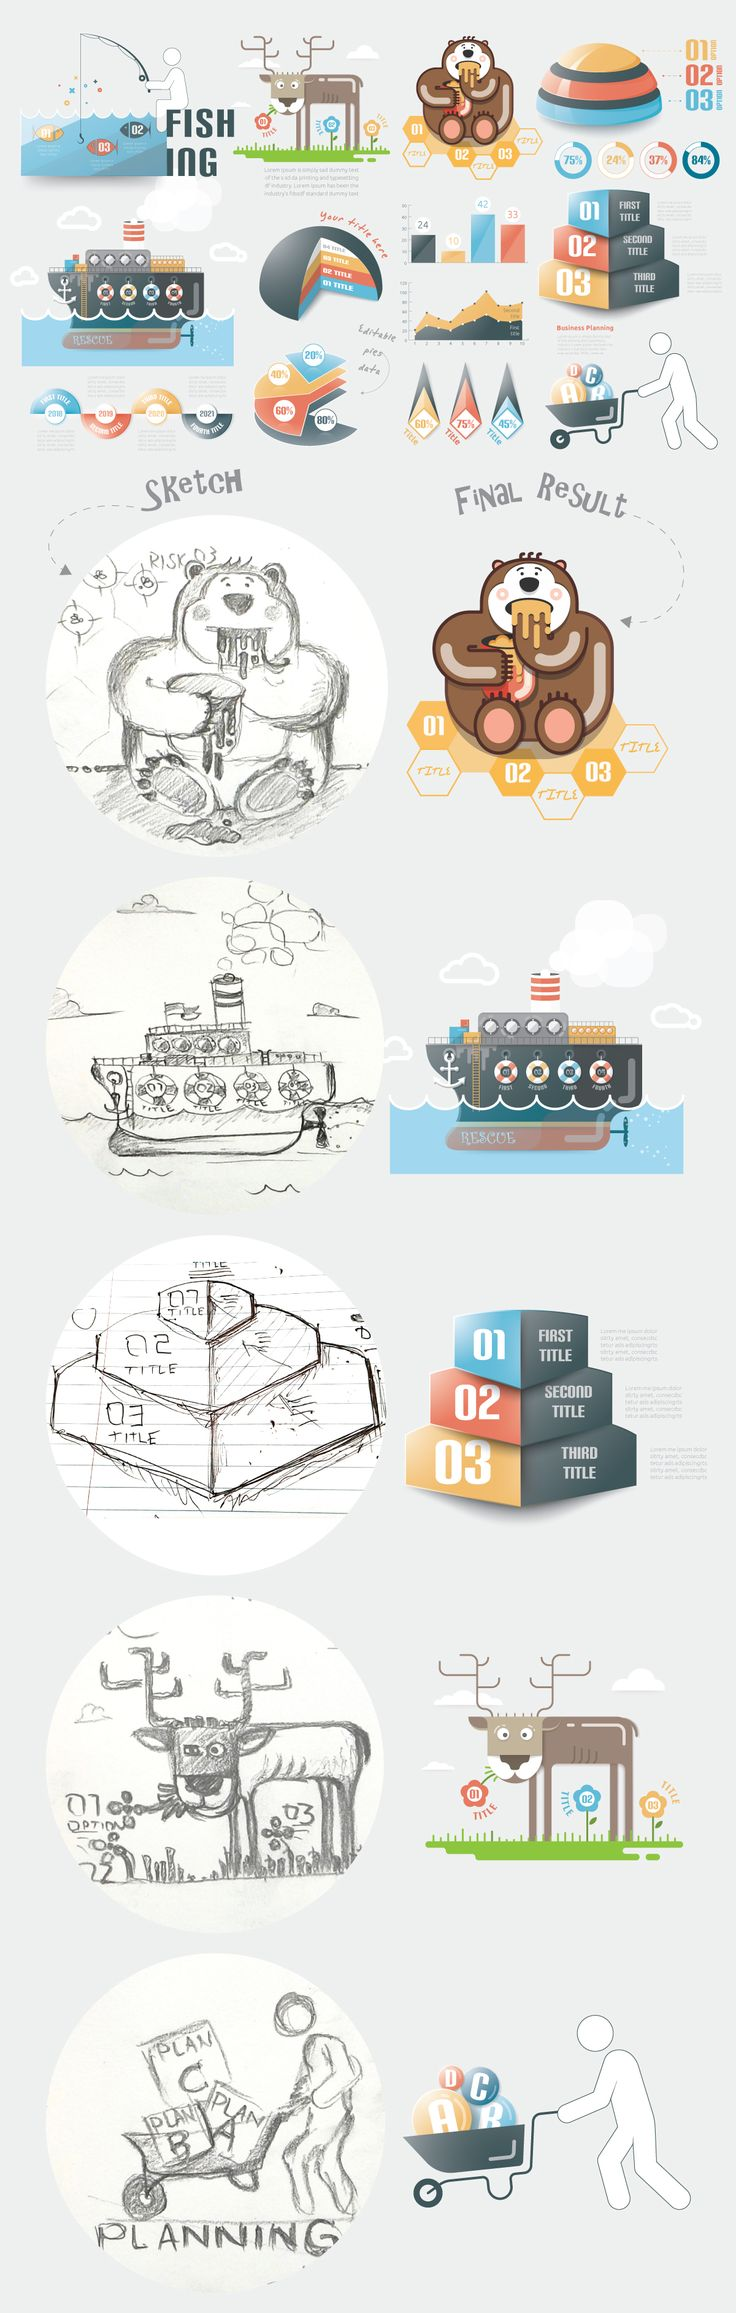 From sketch to result (Infographic Elements v19) on Behance